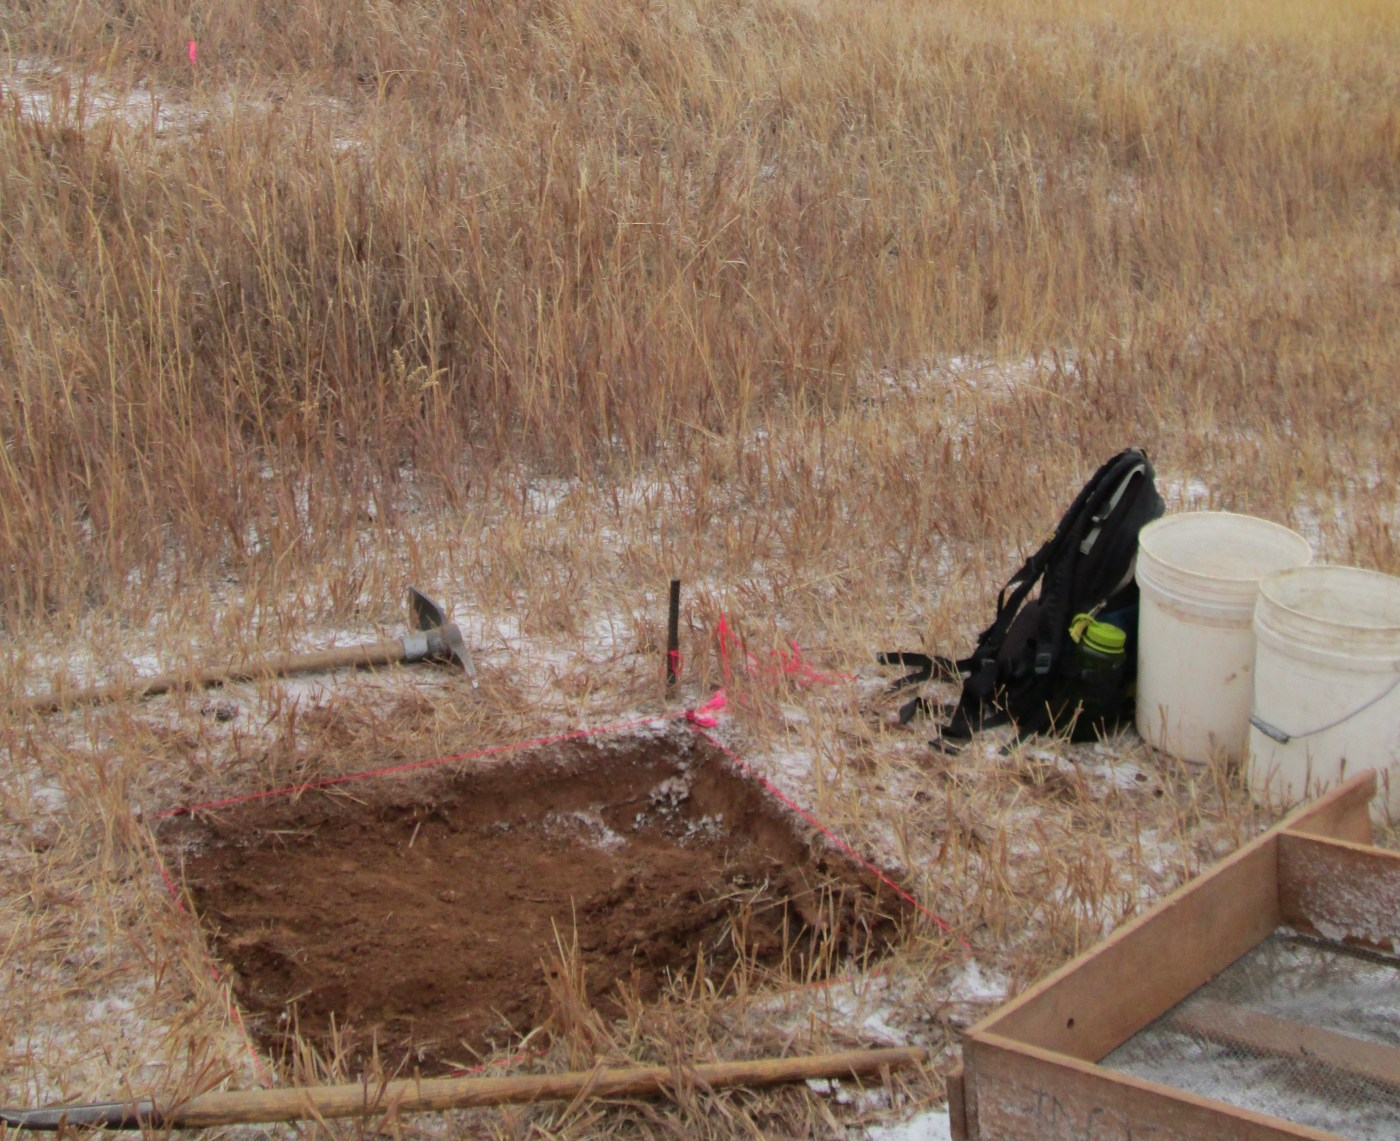 Image of test excavation unit outside